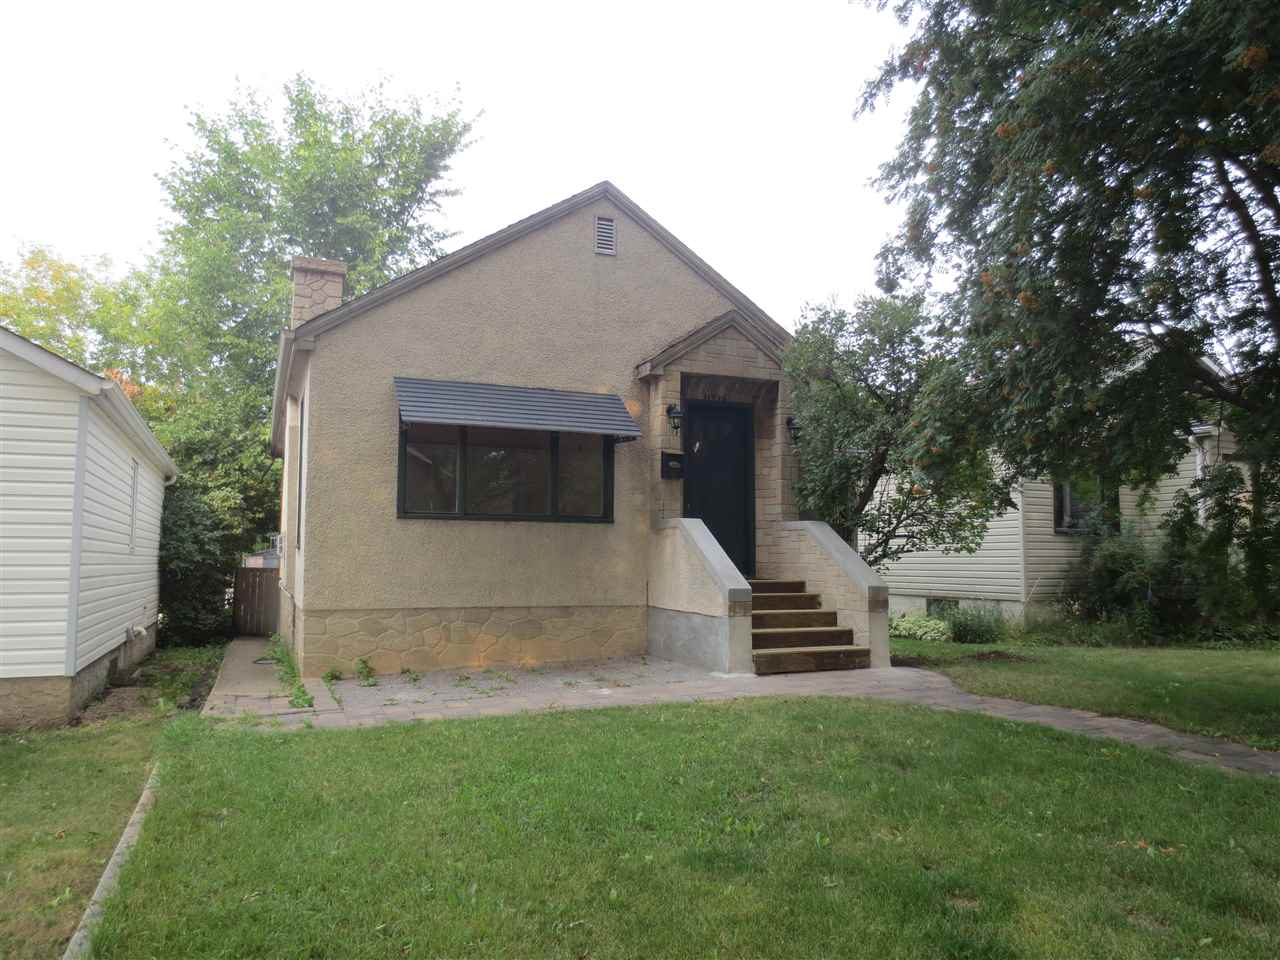 Main Photo: 11520 65 Street in Edmonton: Zone 09 House for sale : MLS® # E4074527